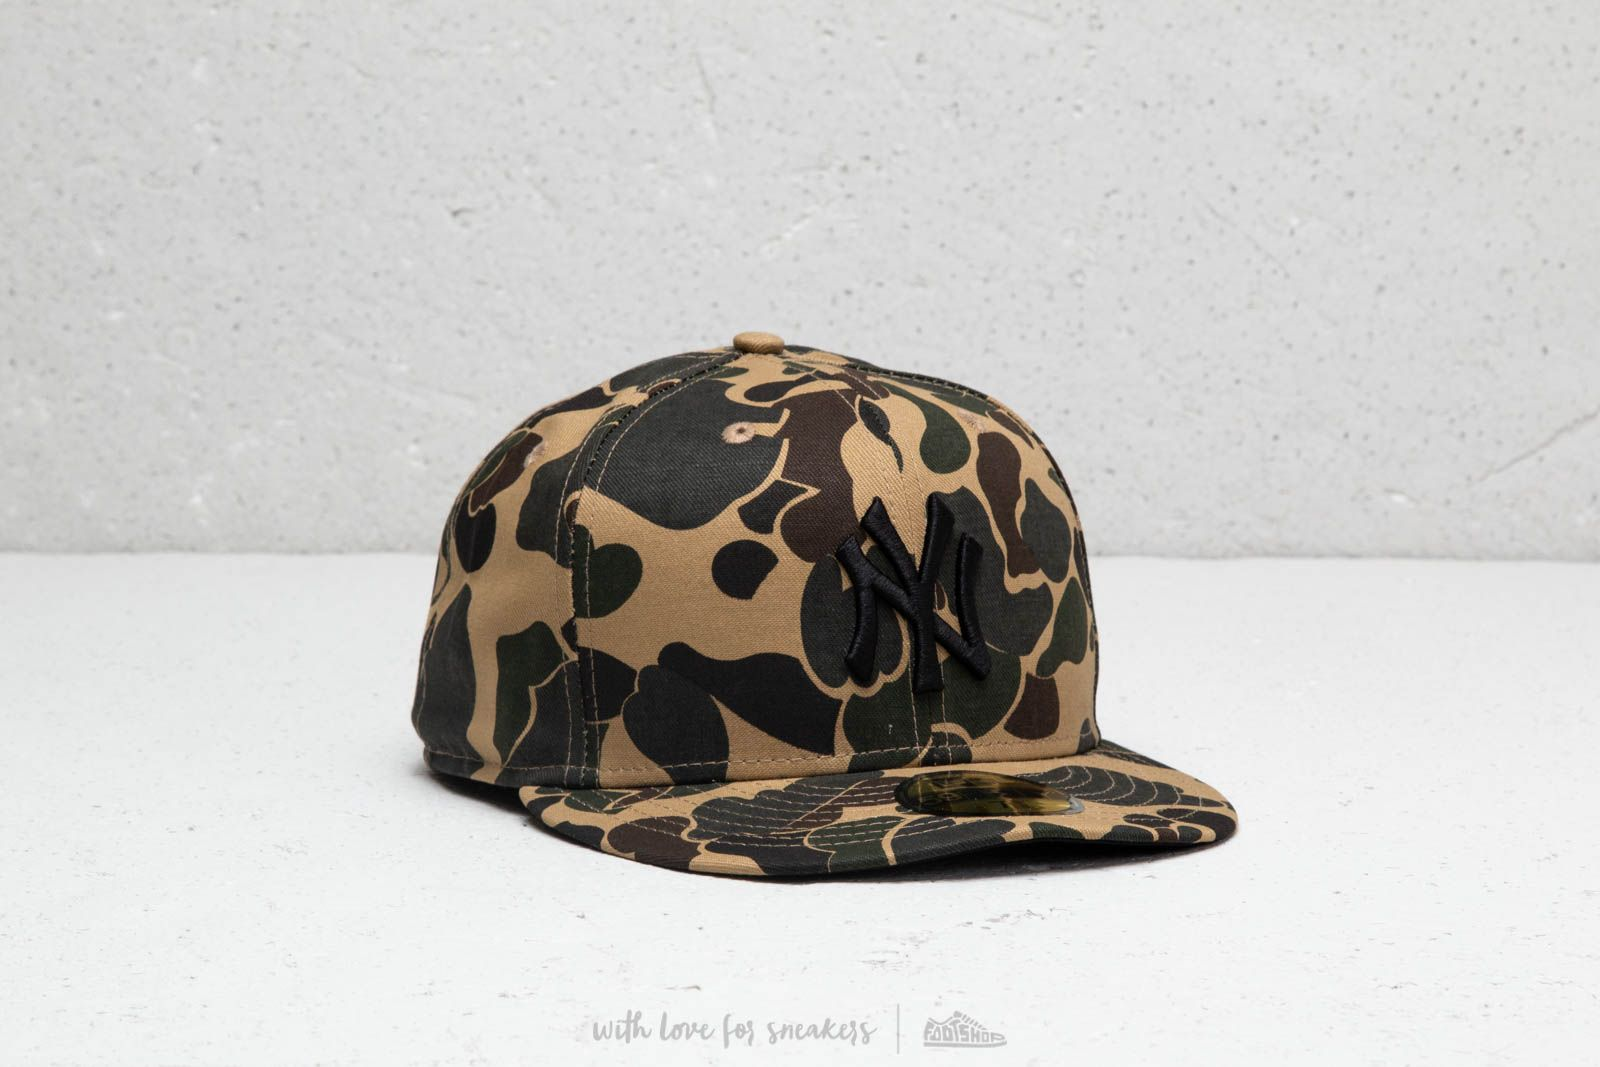 cf6a46d3 20.00 57262 8c6f9; best new era 59fifty mlb new york yankees cap camo at a  great price 32 buy